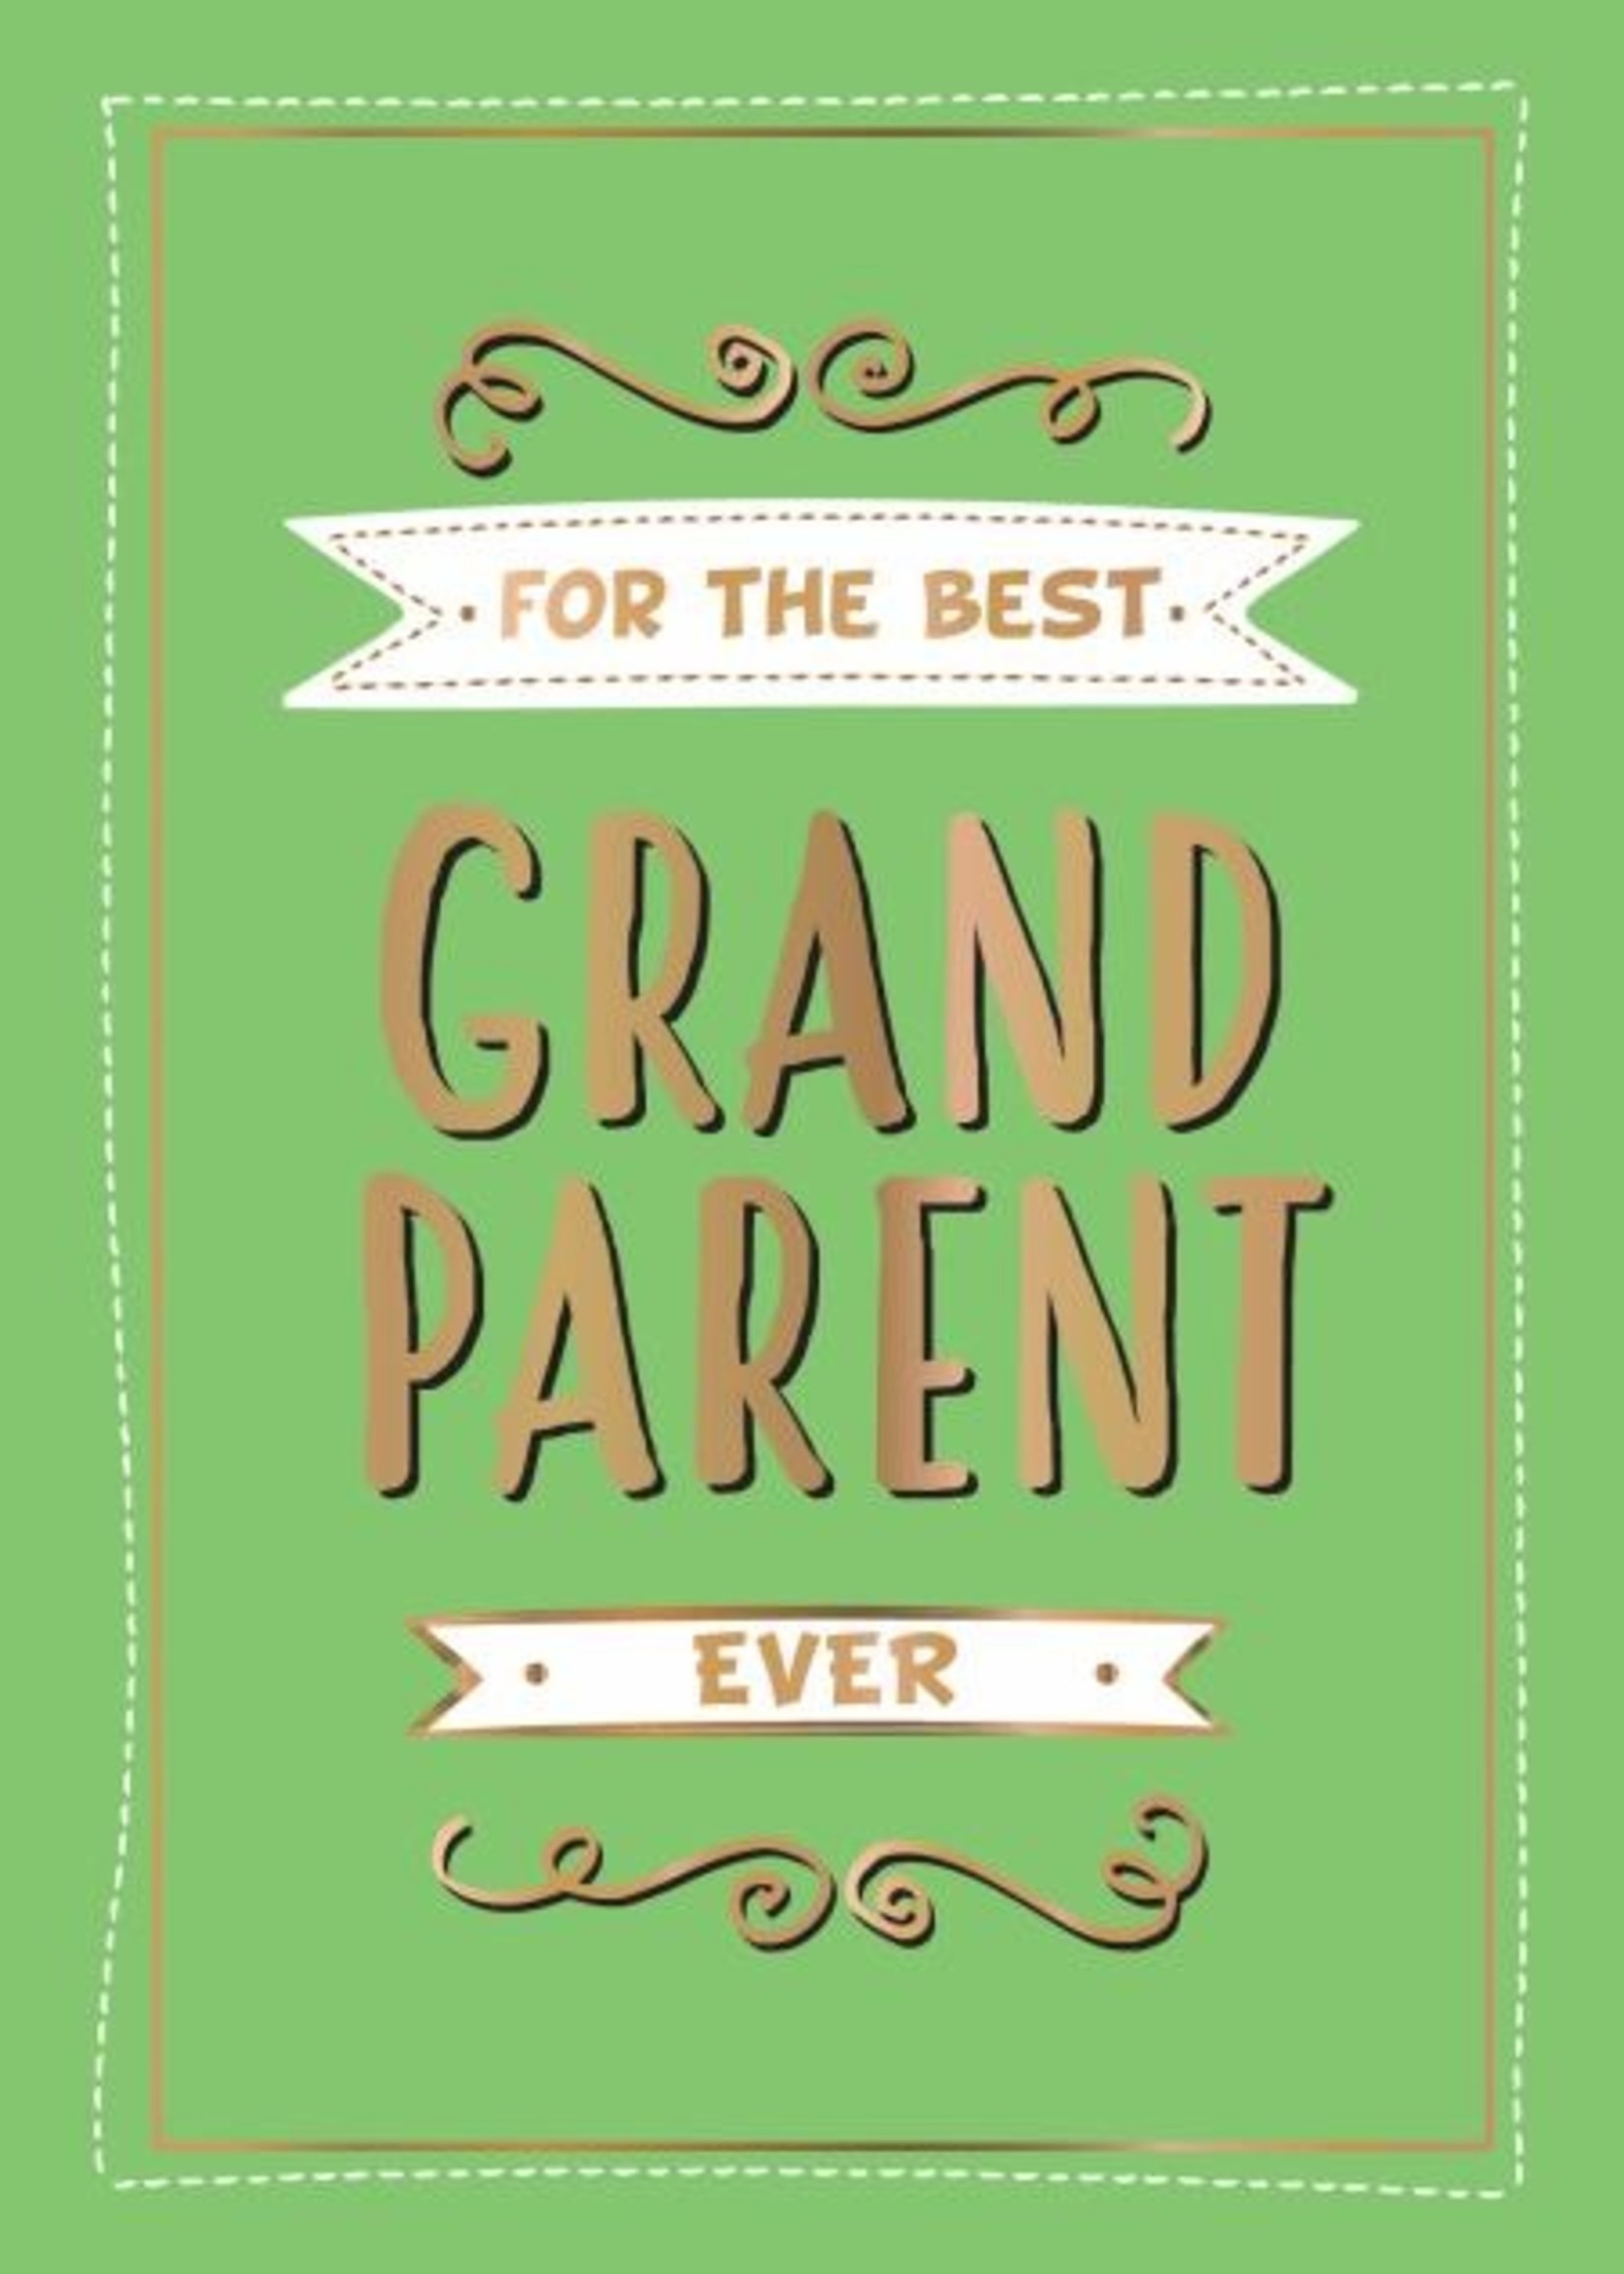 hachette book group hachette for the best grandparent ever book